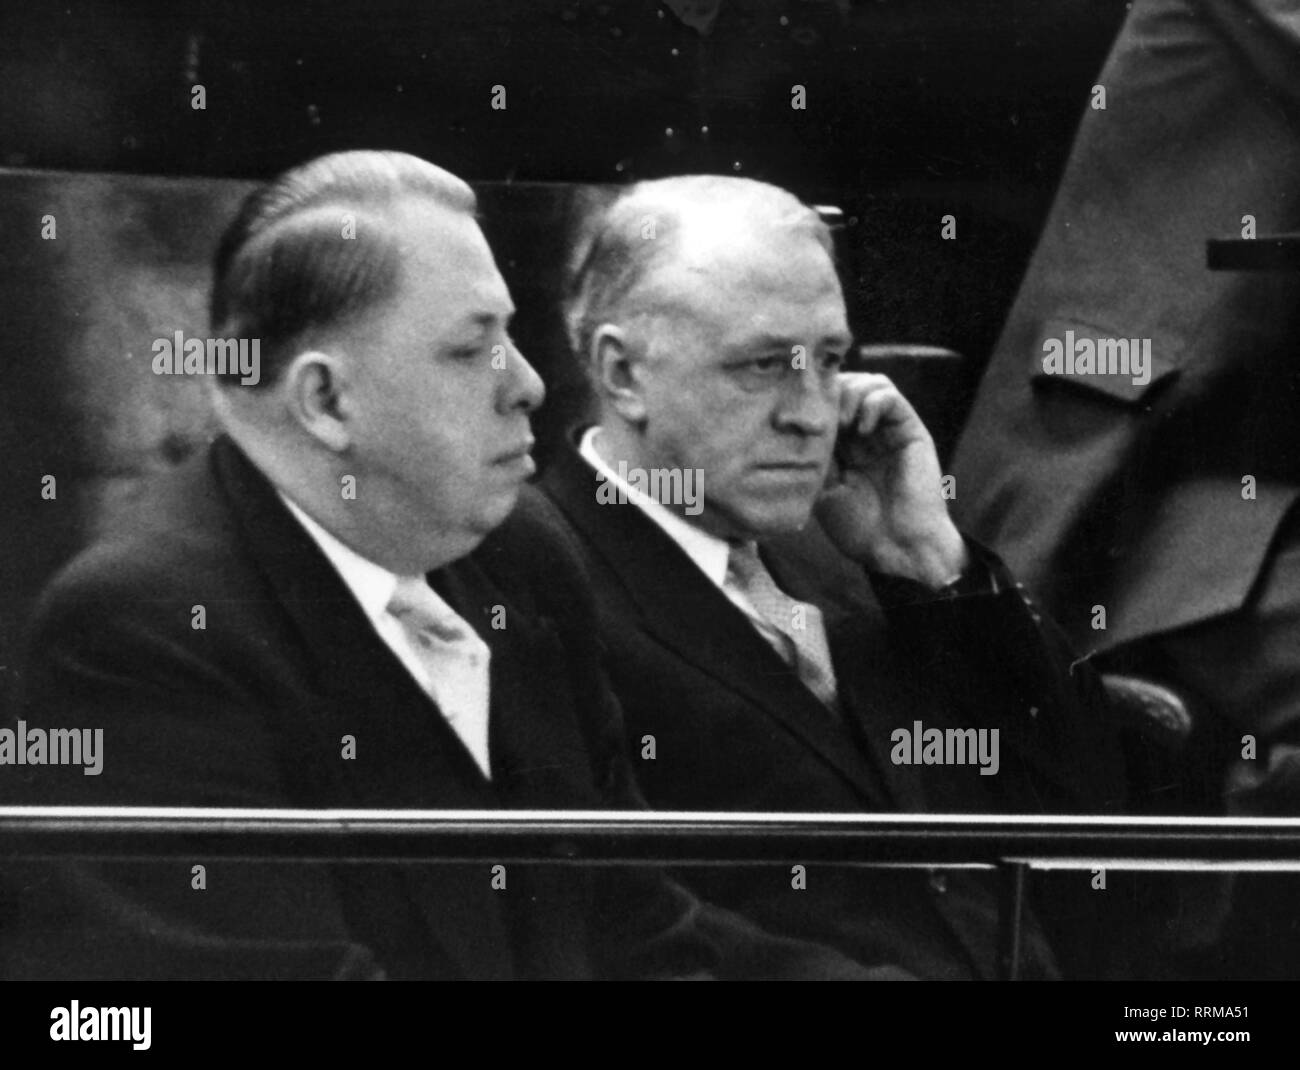 Zorin, Valerian Alexandrovich, 1.1.1902 - 14.1.1986, Soviet diplomat, ambassador of the USSR to the Federal Republic of Germany 1956 - 1957, portrait, visiting a session of the Federal Parliament, 15.3.1956, with counsellor Sergey Kudriavzev, Additional-Rights-Clearance-Info-Not-Available - Stock Image